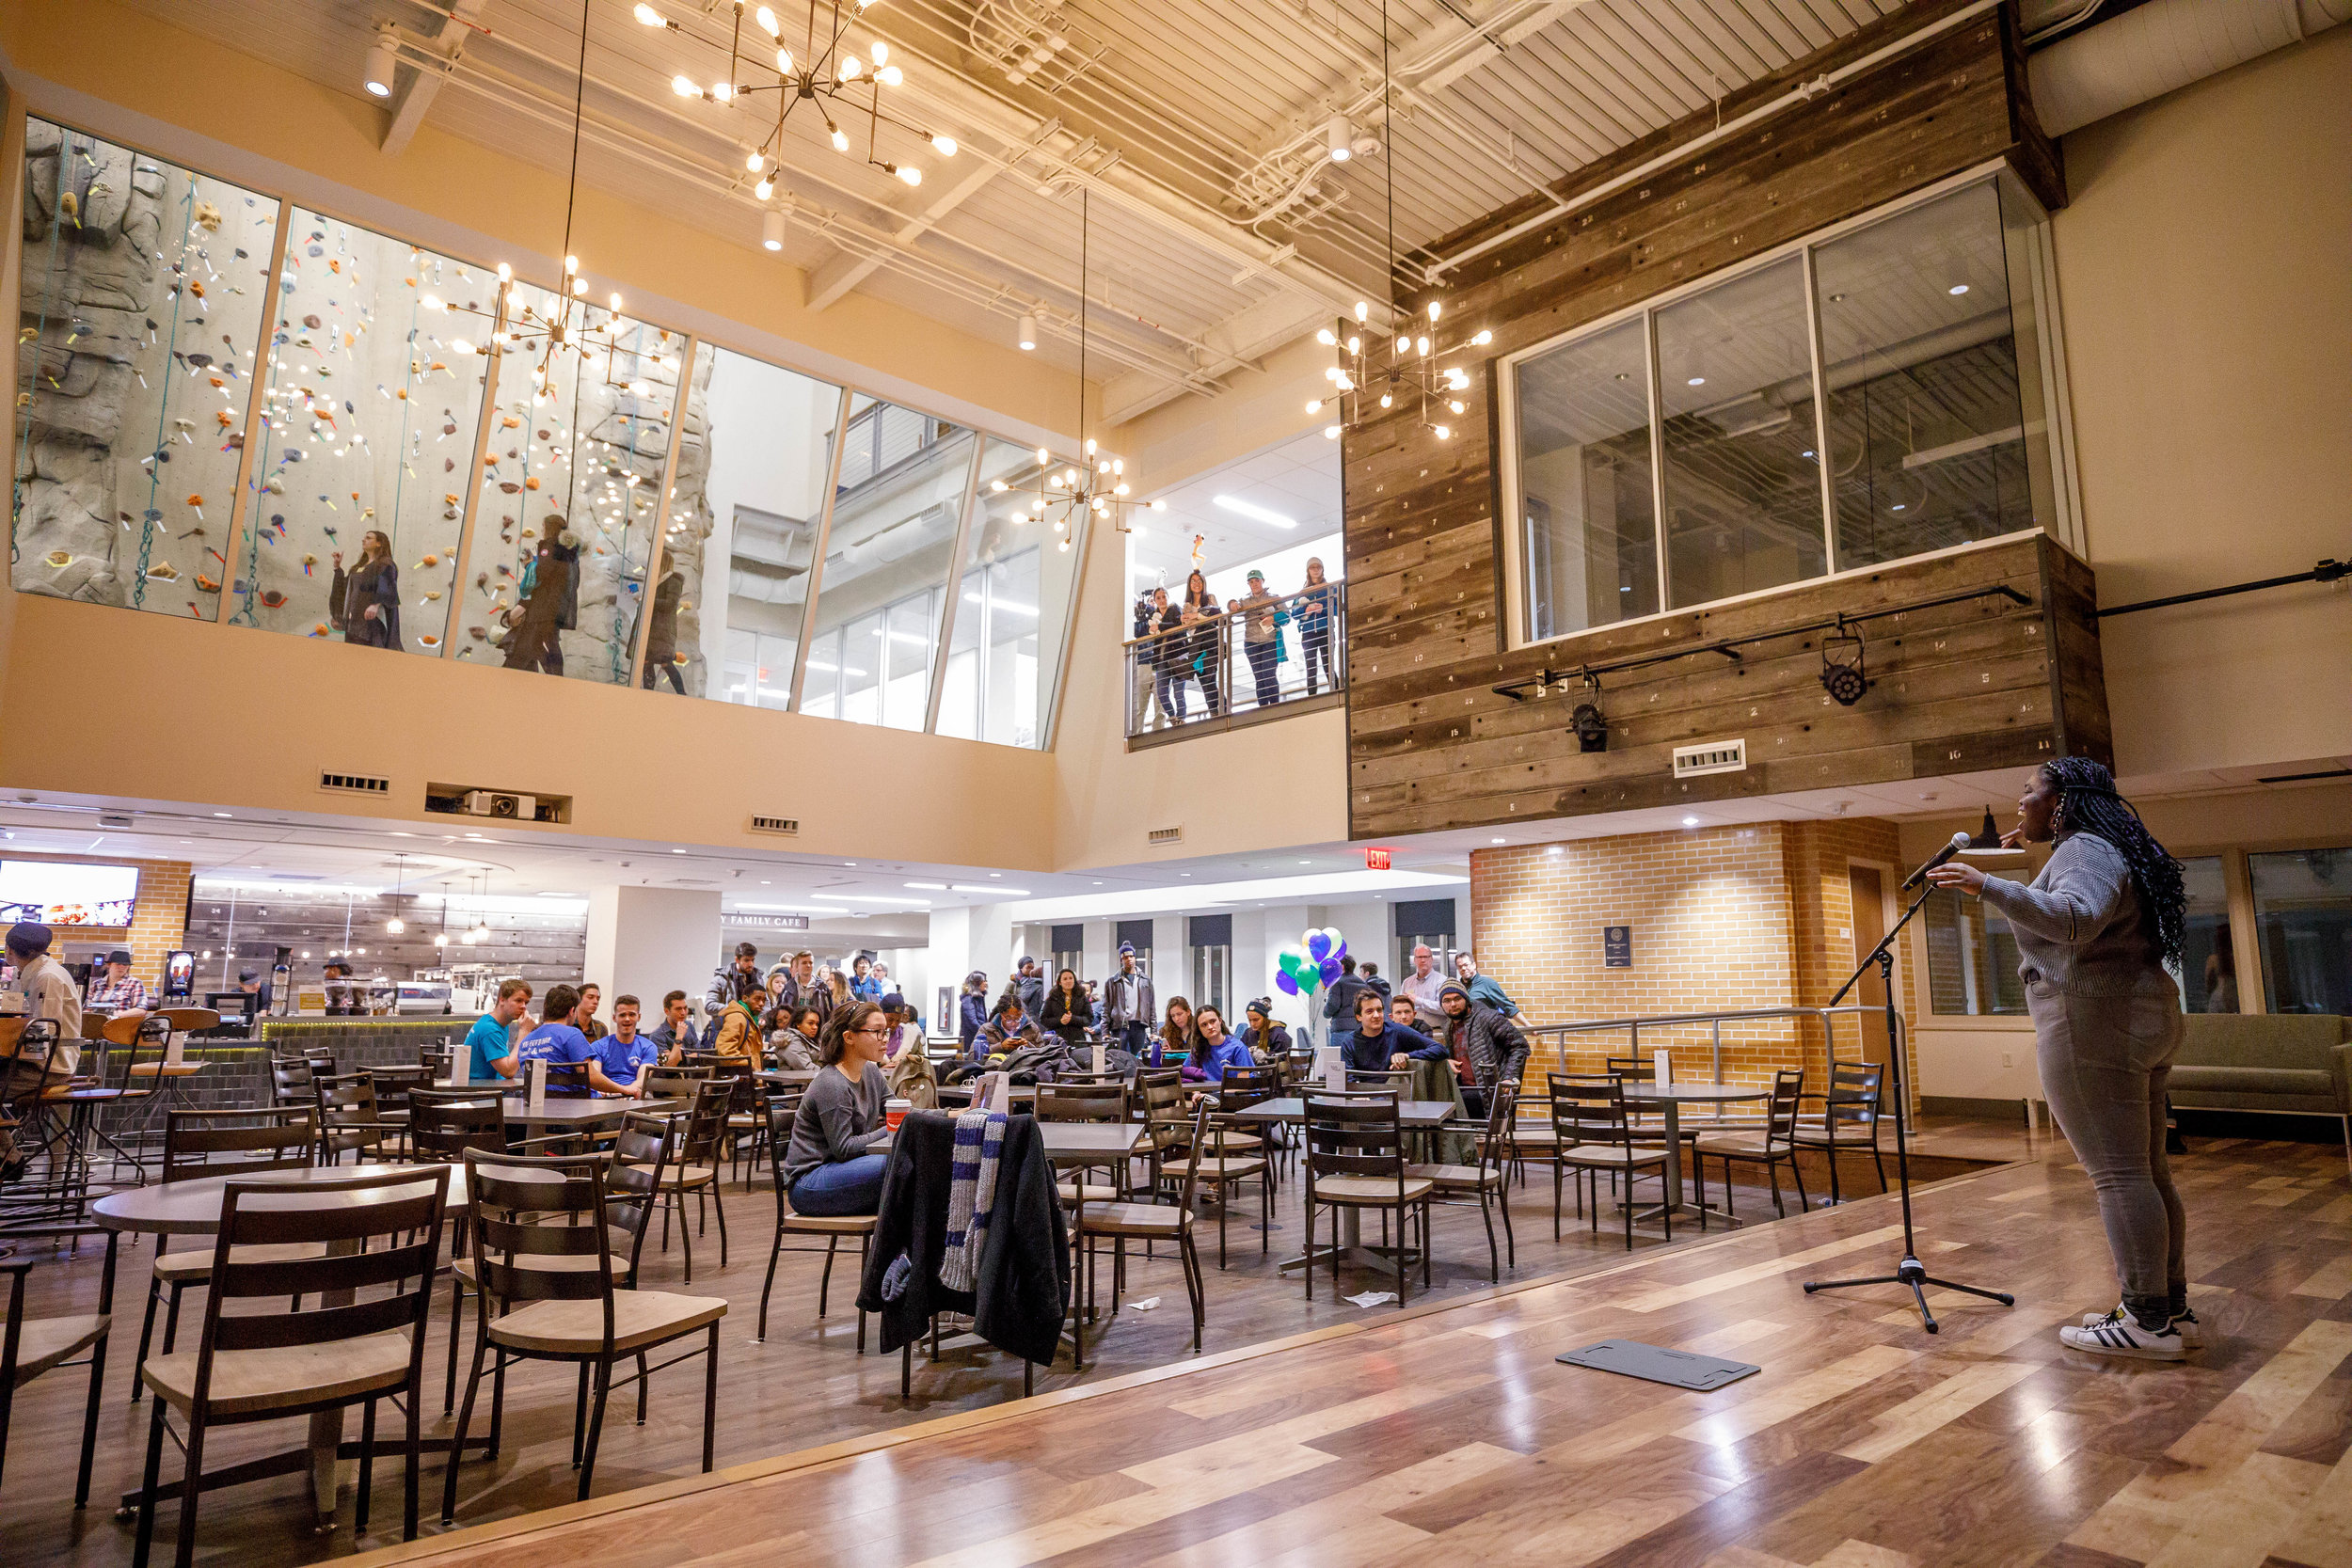 Duncan Student Center Wins SCUP/AIA-CAE Excellence in Architecture Award